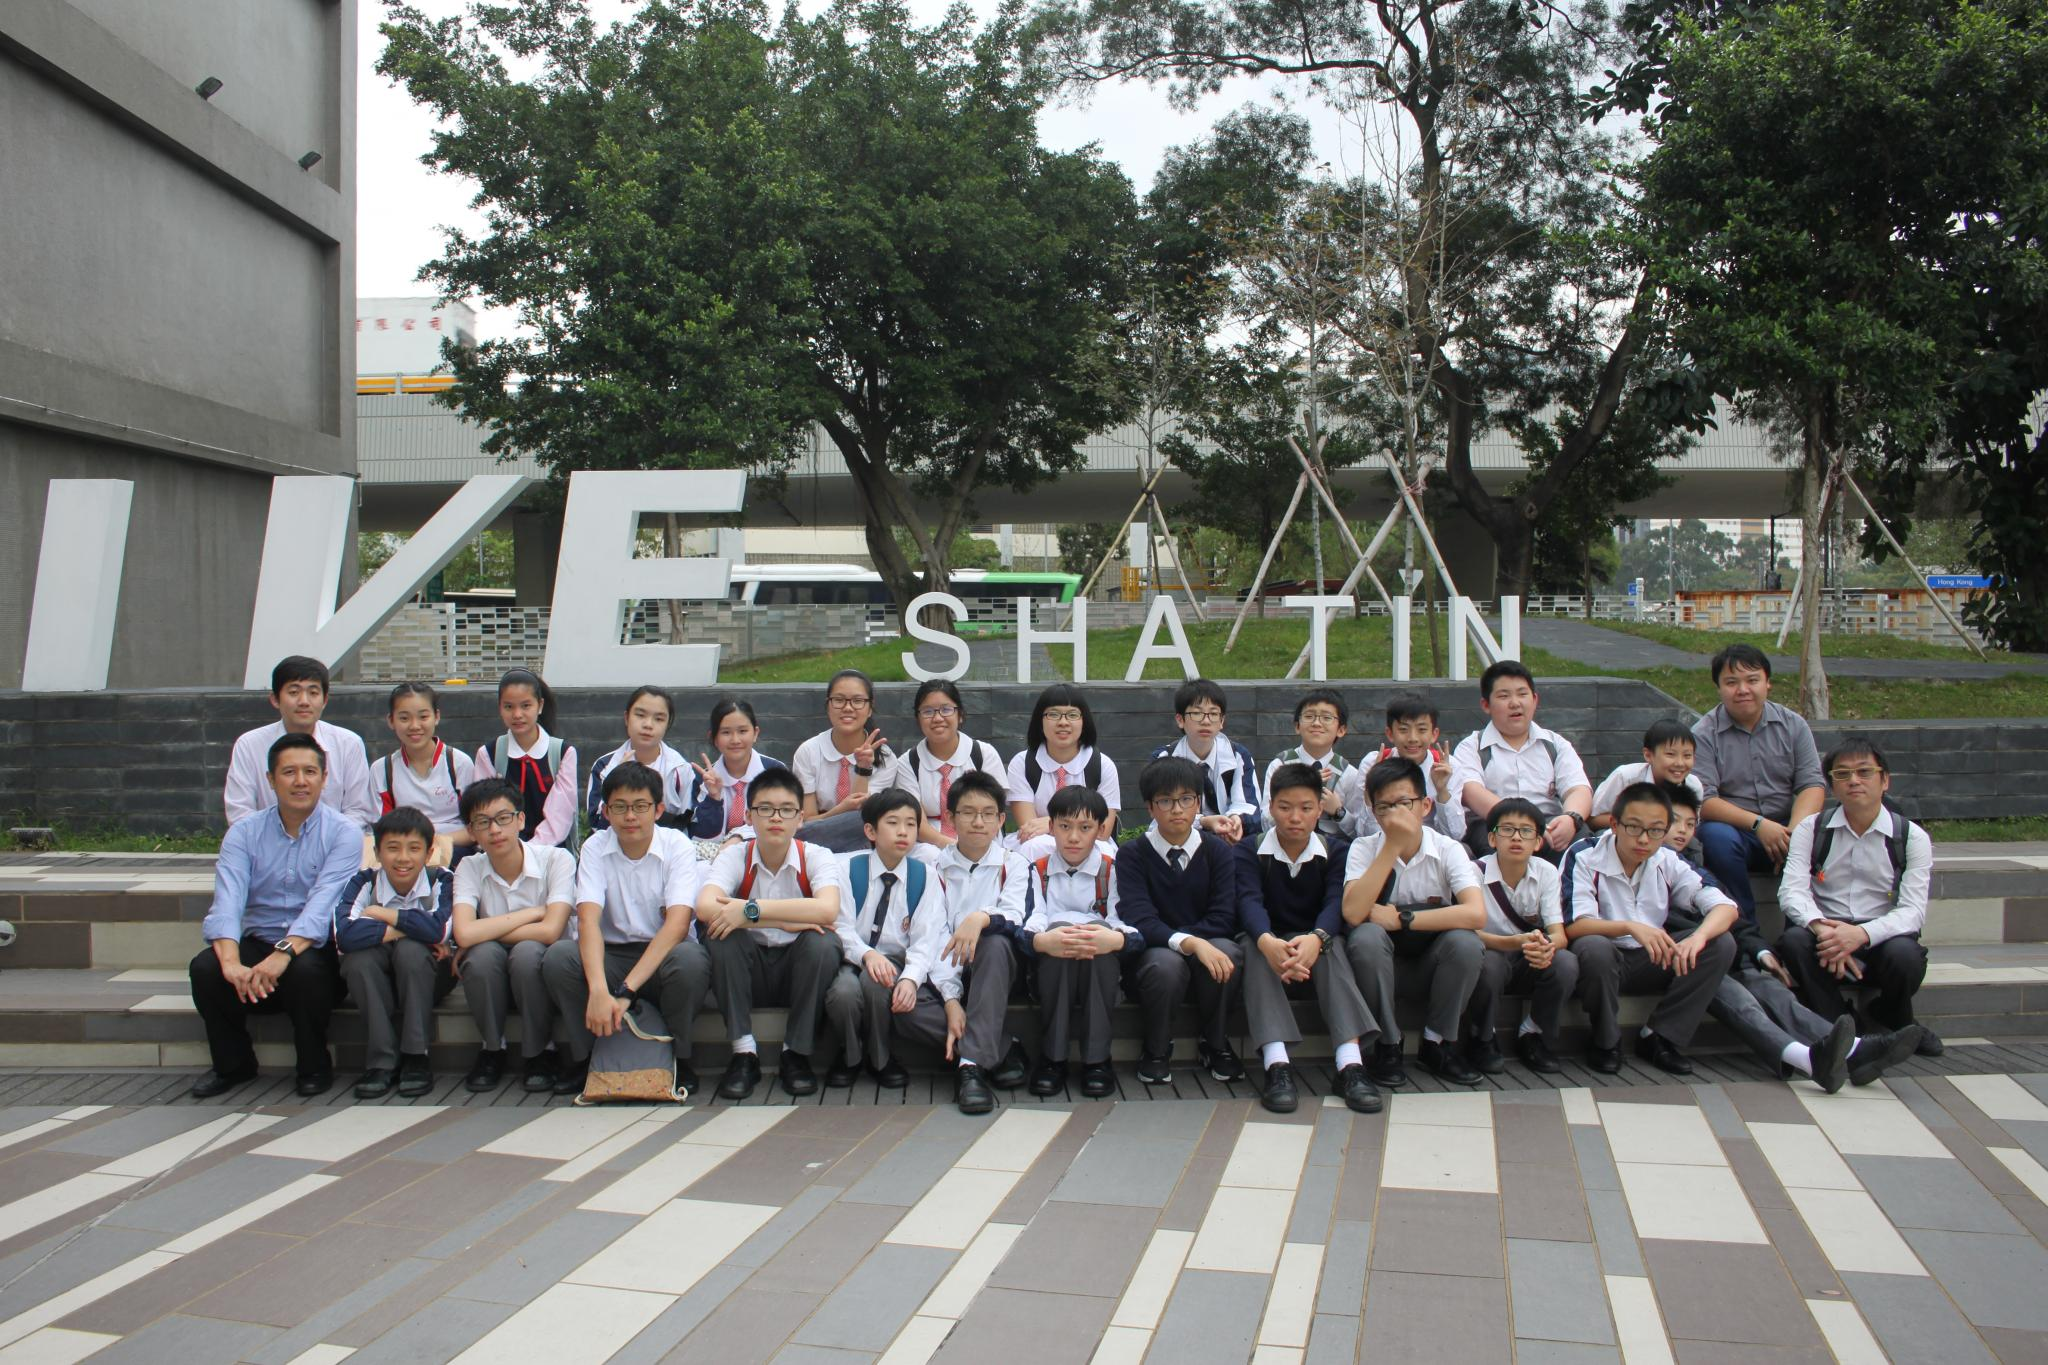 All students took a photo together.